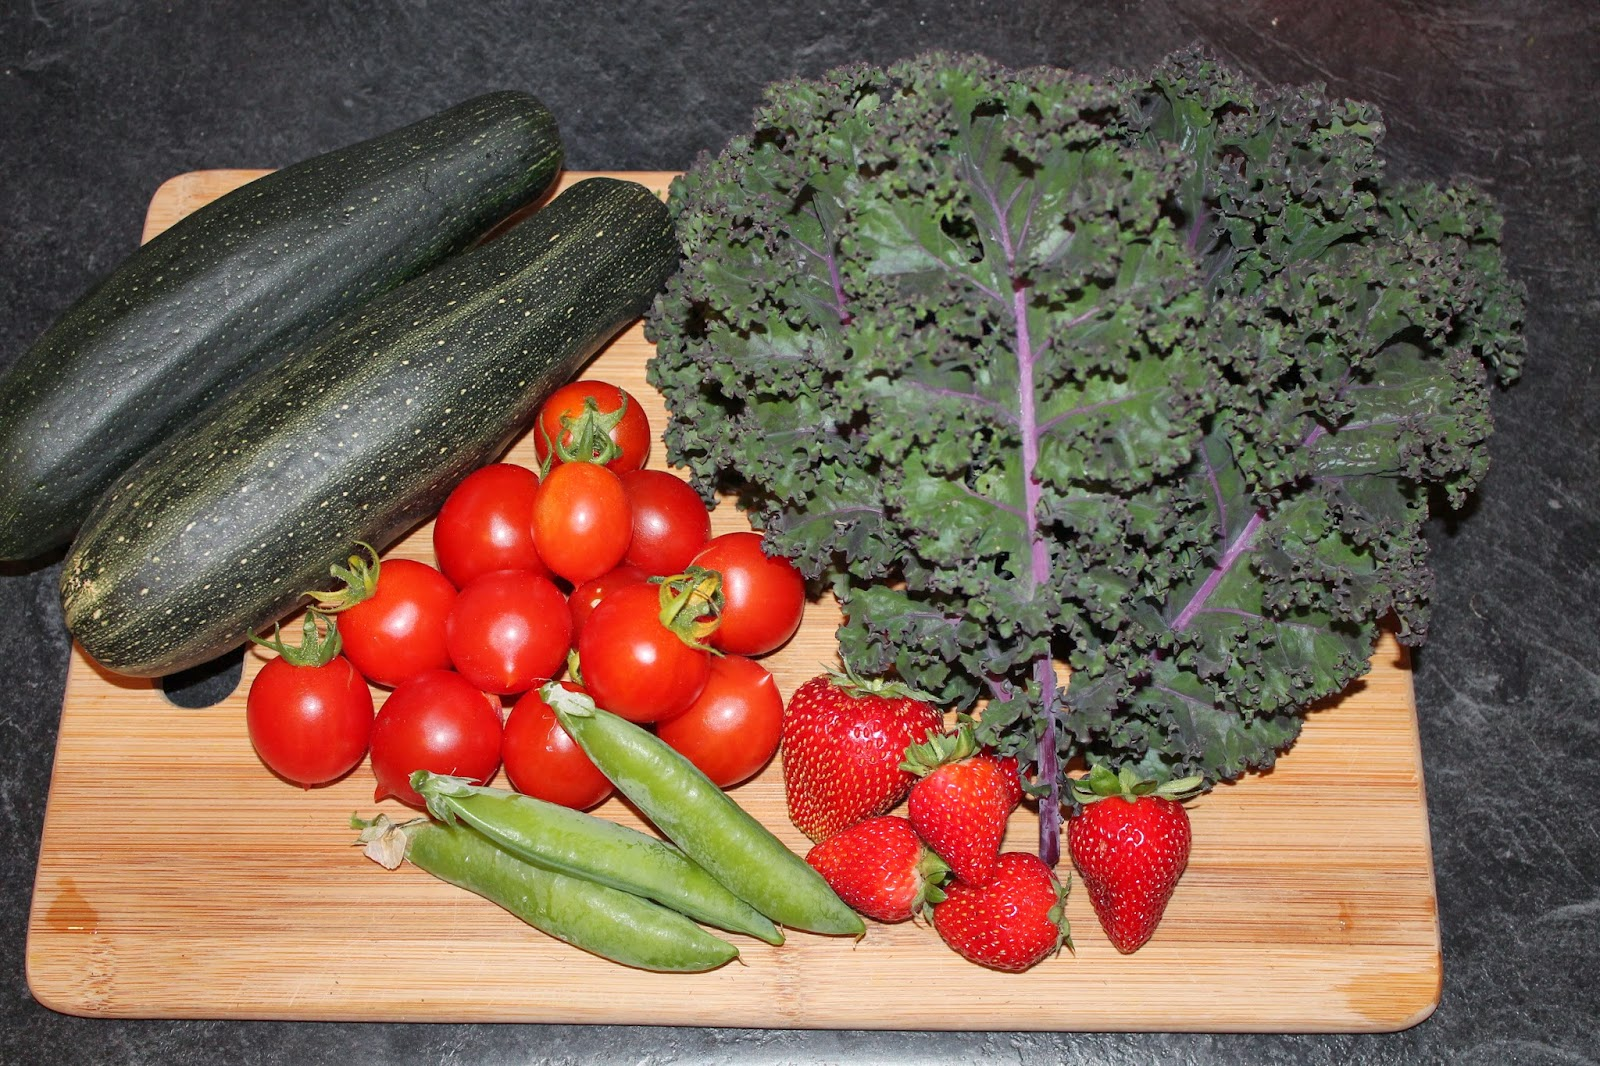 Fresh zucchini, tomatoes, peas, kale and strawberries from the garden